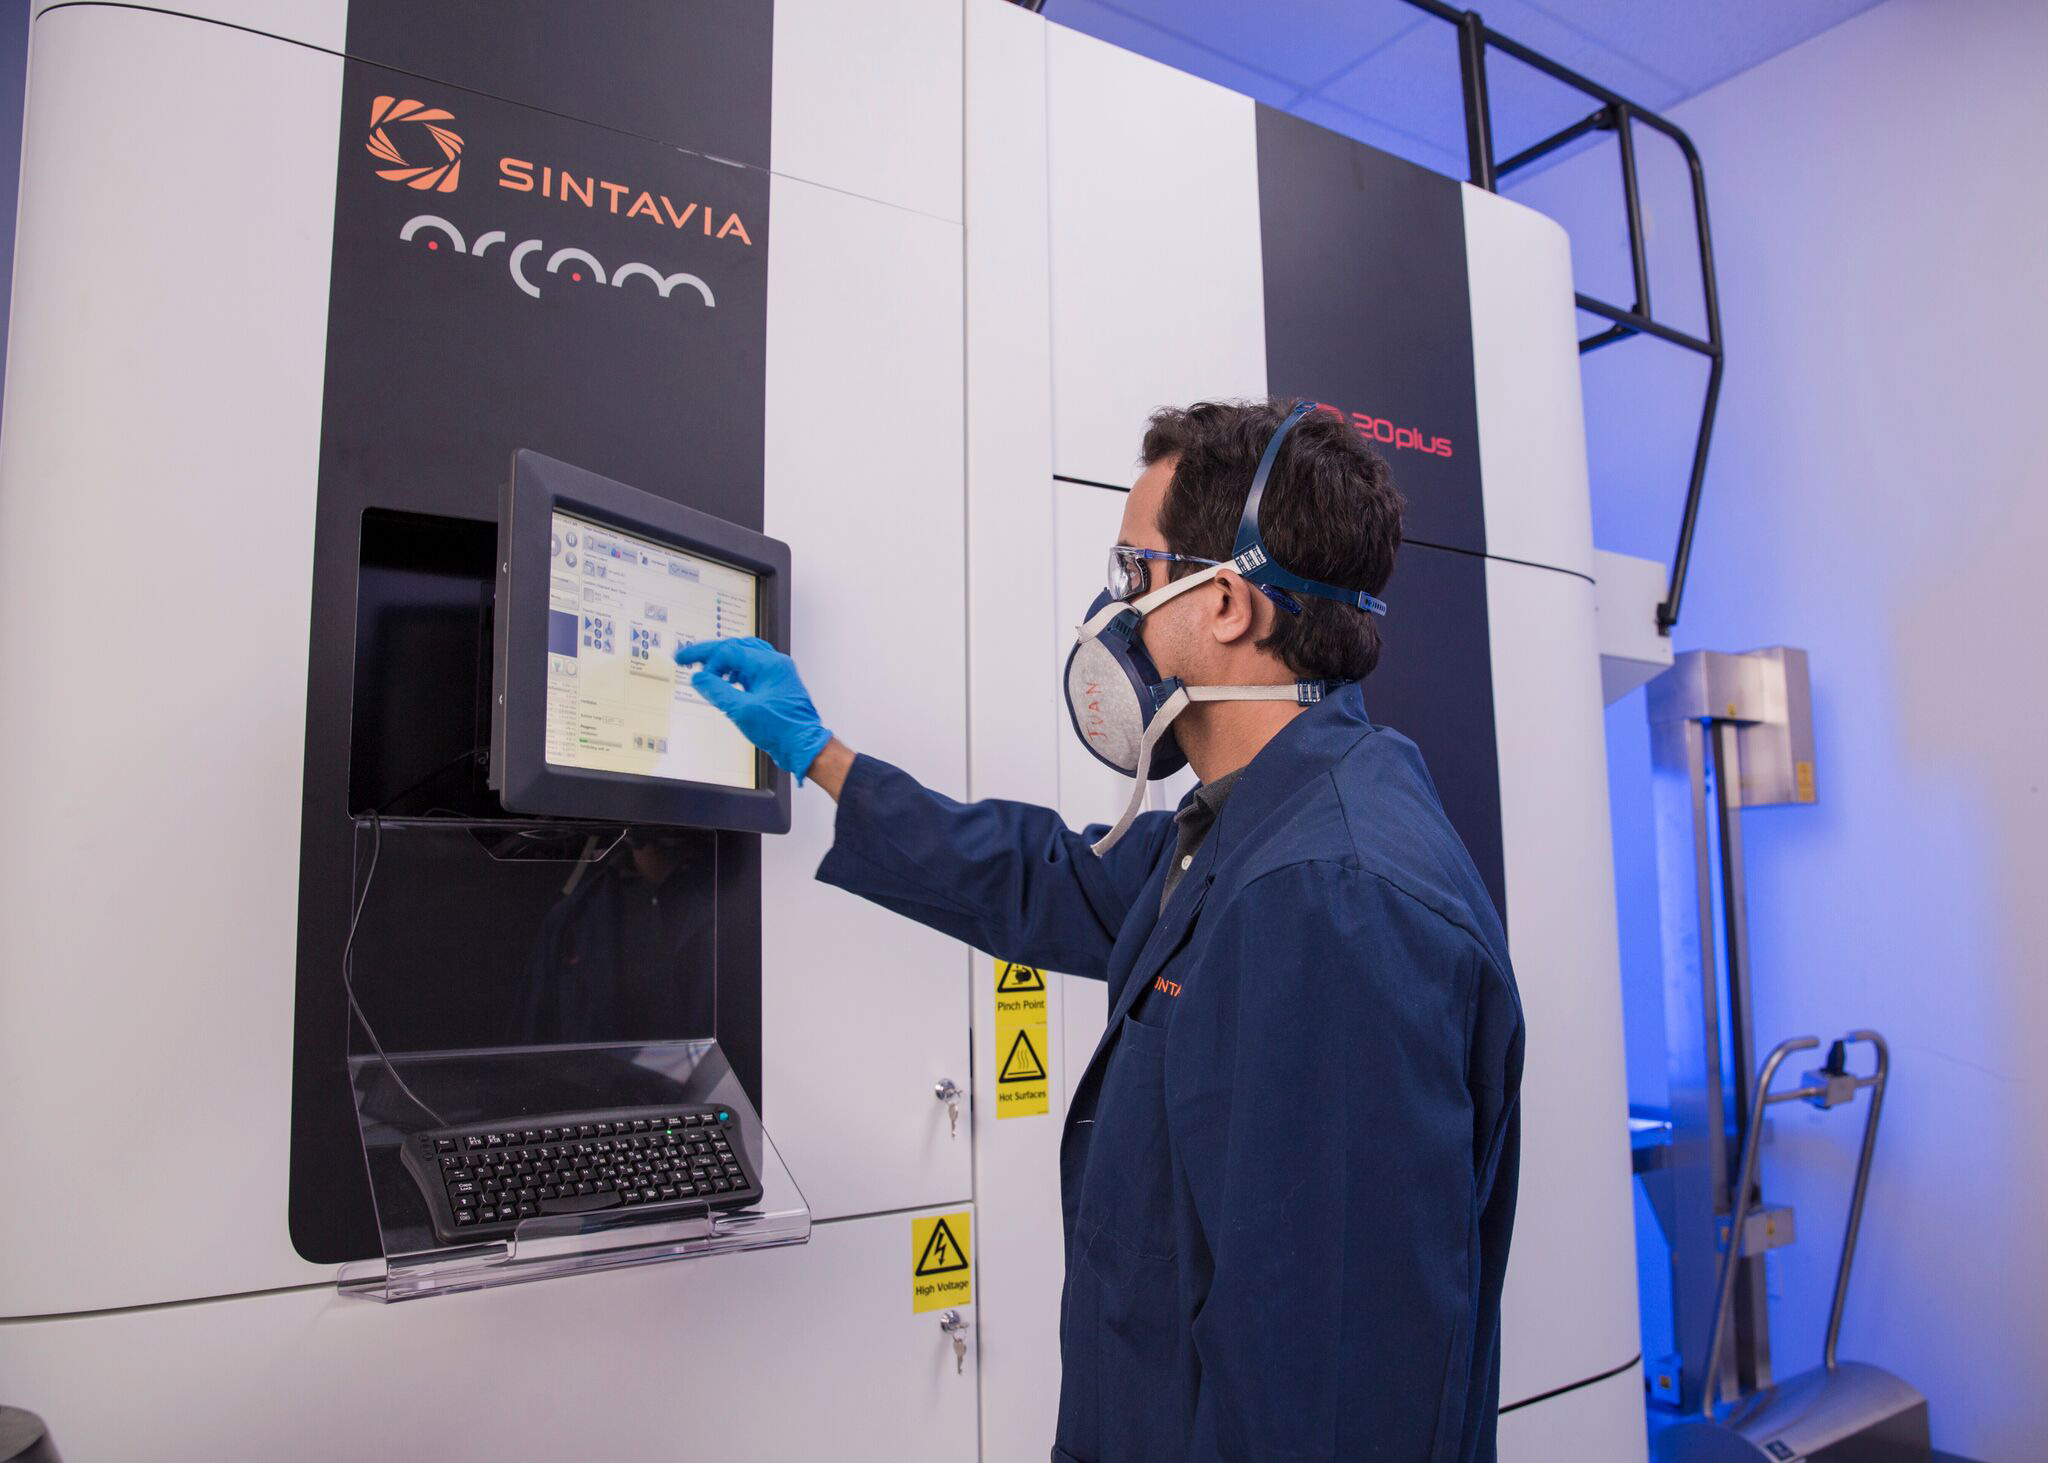 One of Sintavia's Arcam machines. Photo via Business Wire.